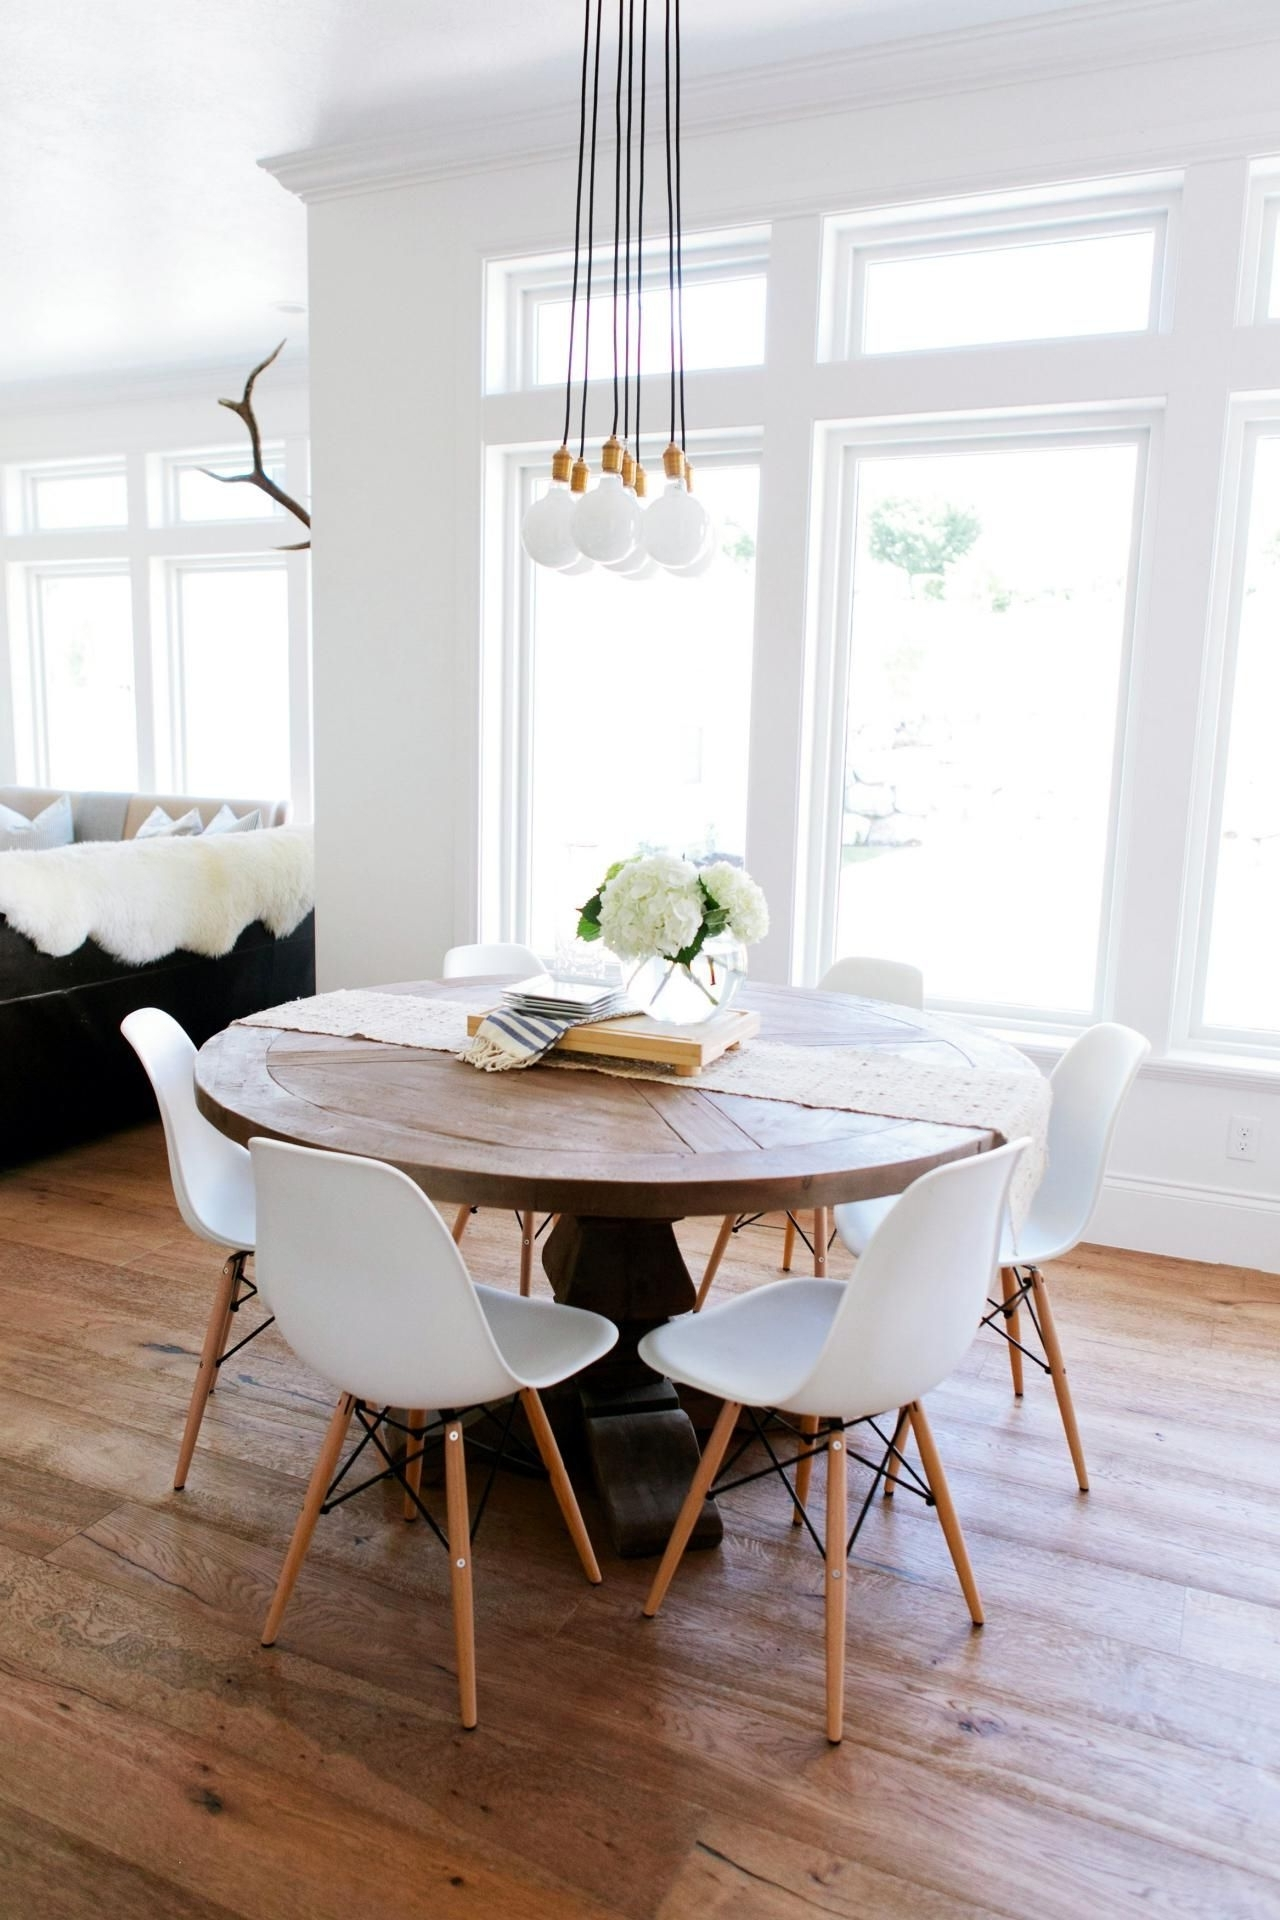 A Rustic Round Wood Table Surroundedwhite Eames Dining Chairs Pertaining To Famous Small Round White Dining Tables (View 14 of 25)